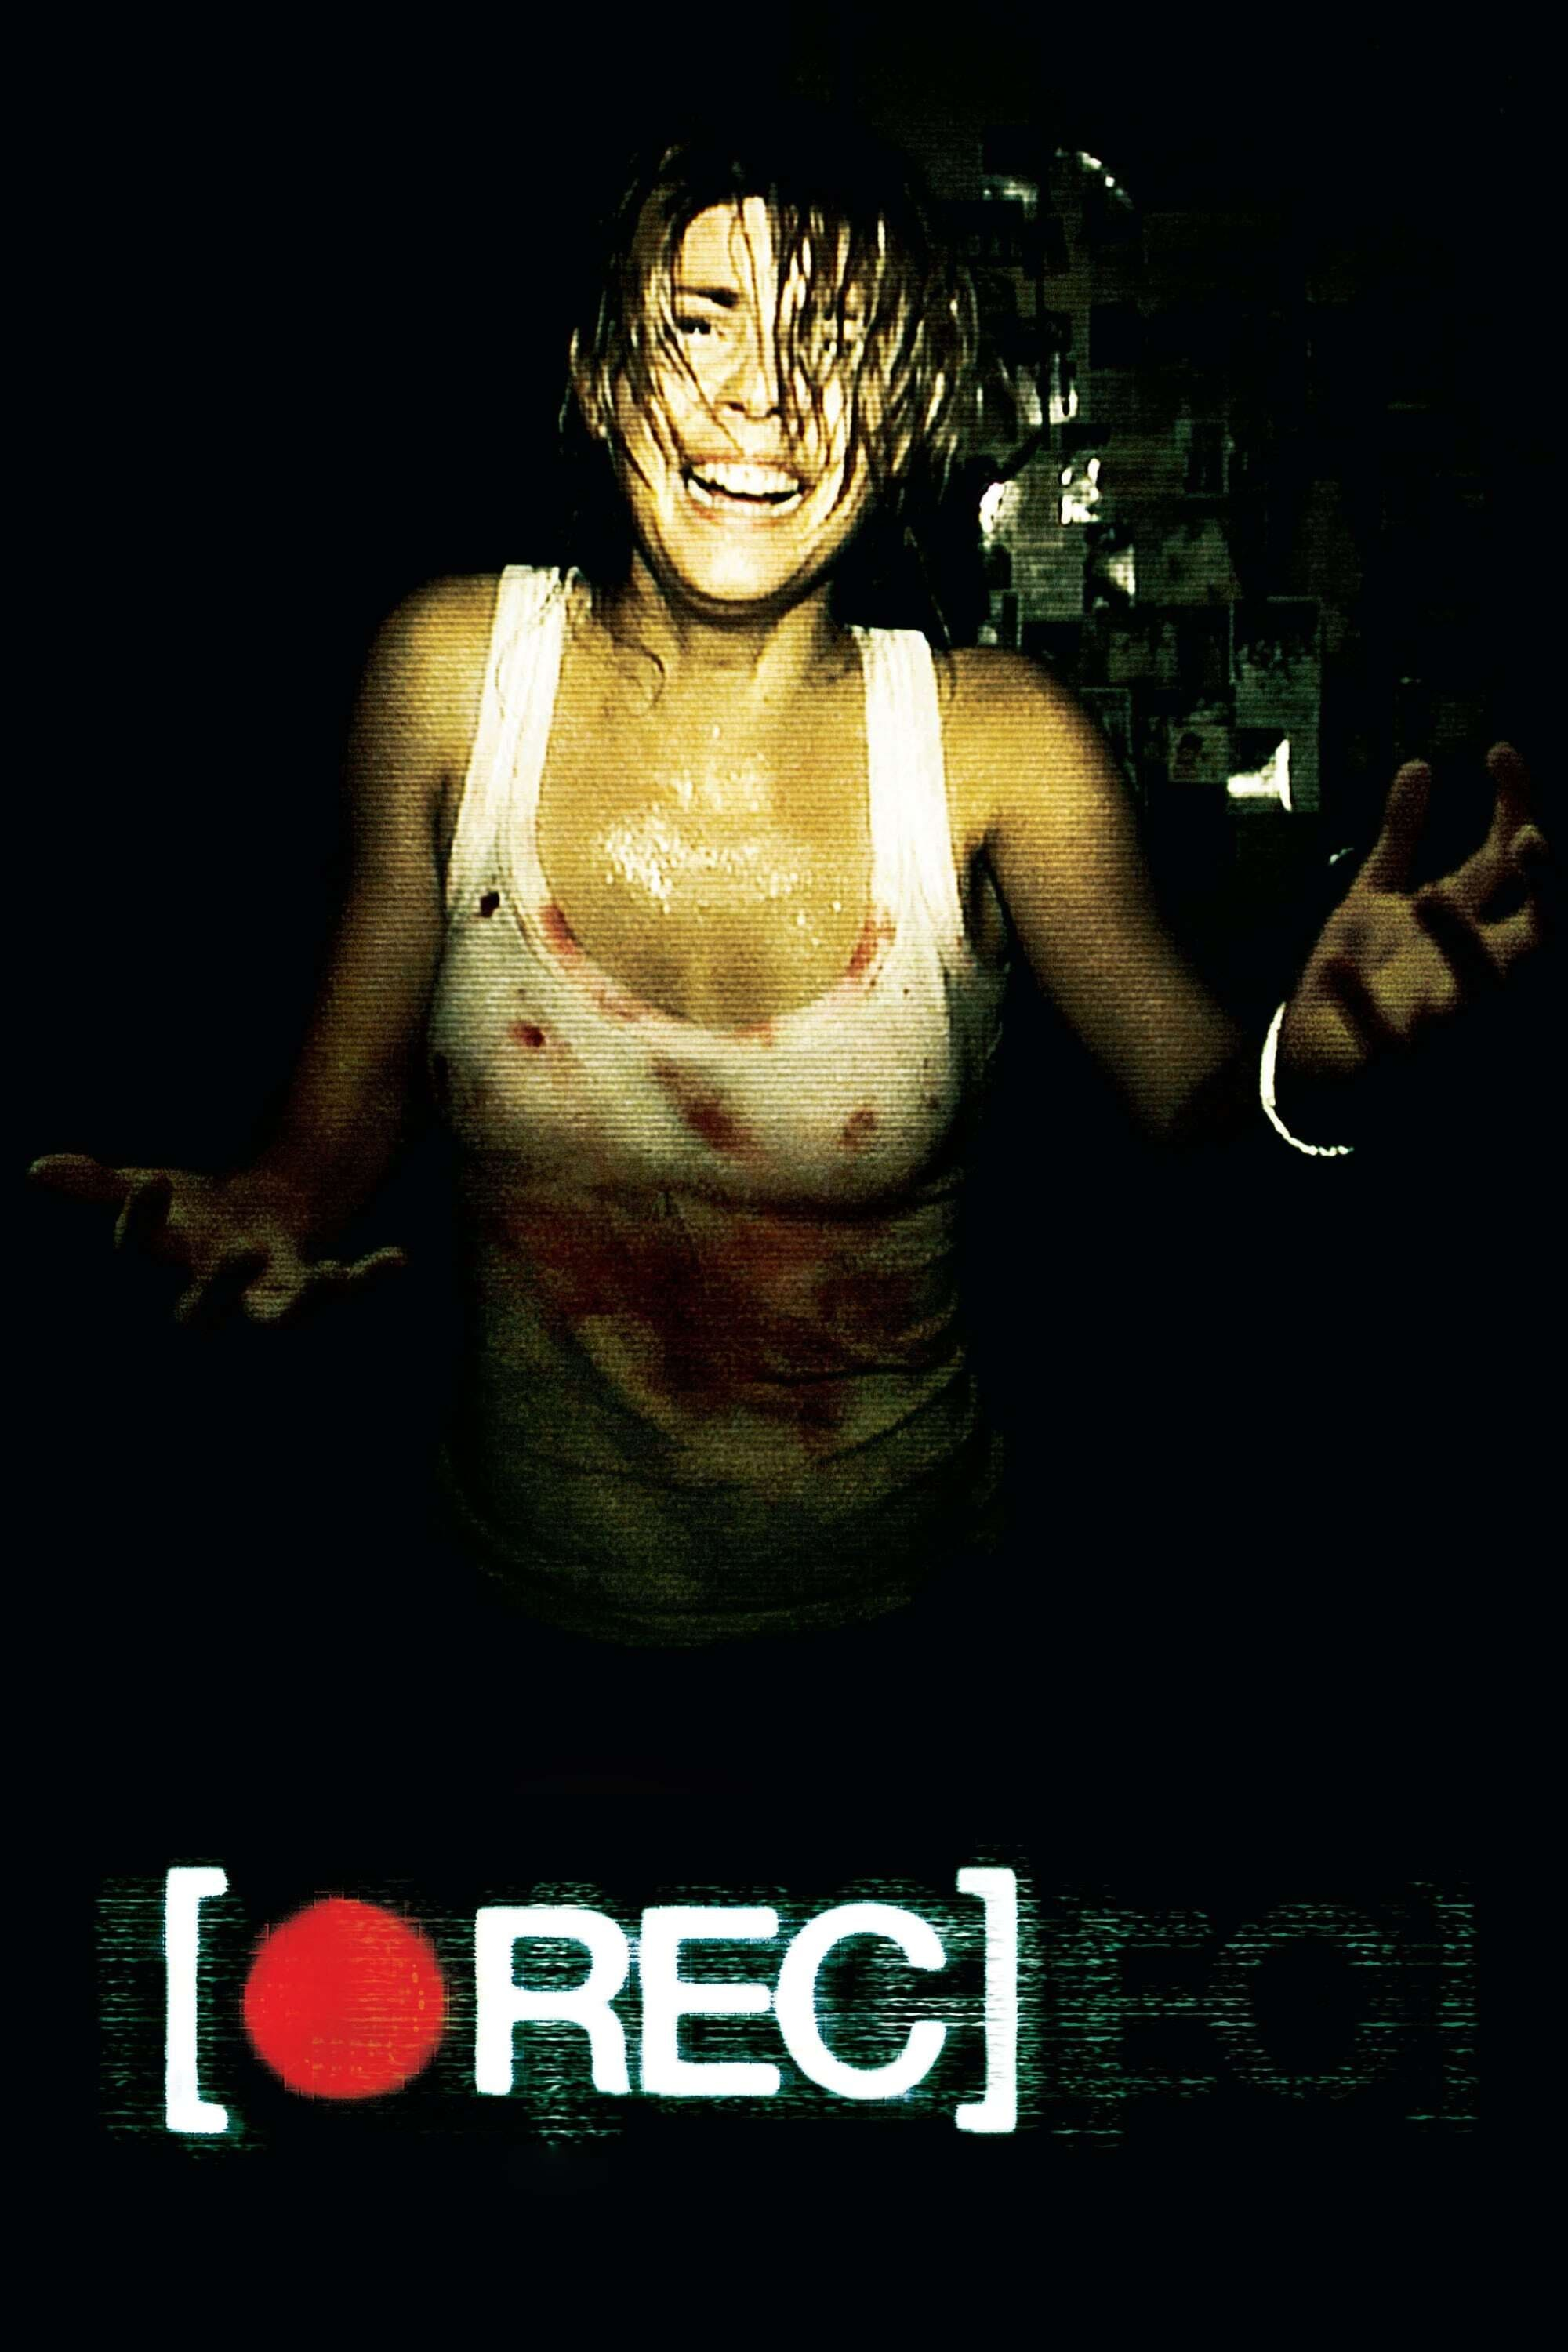 Poster and image movie [REC]